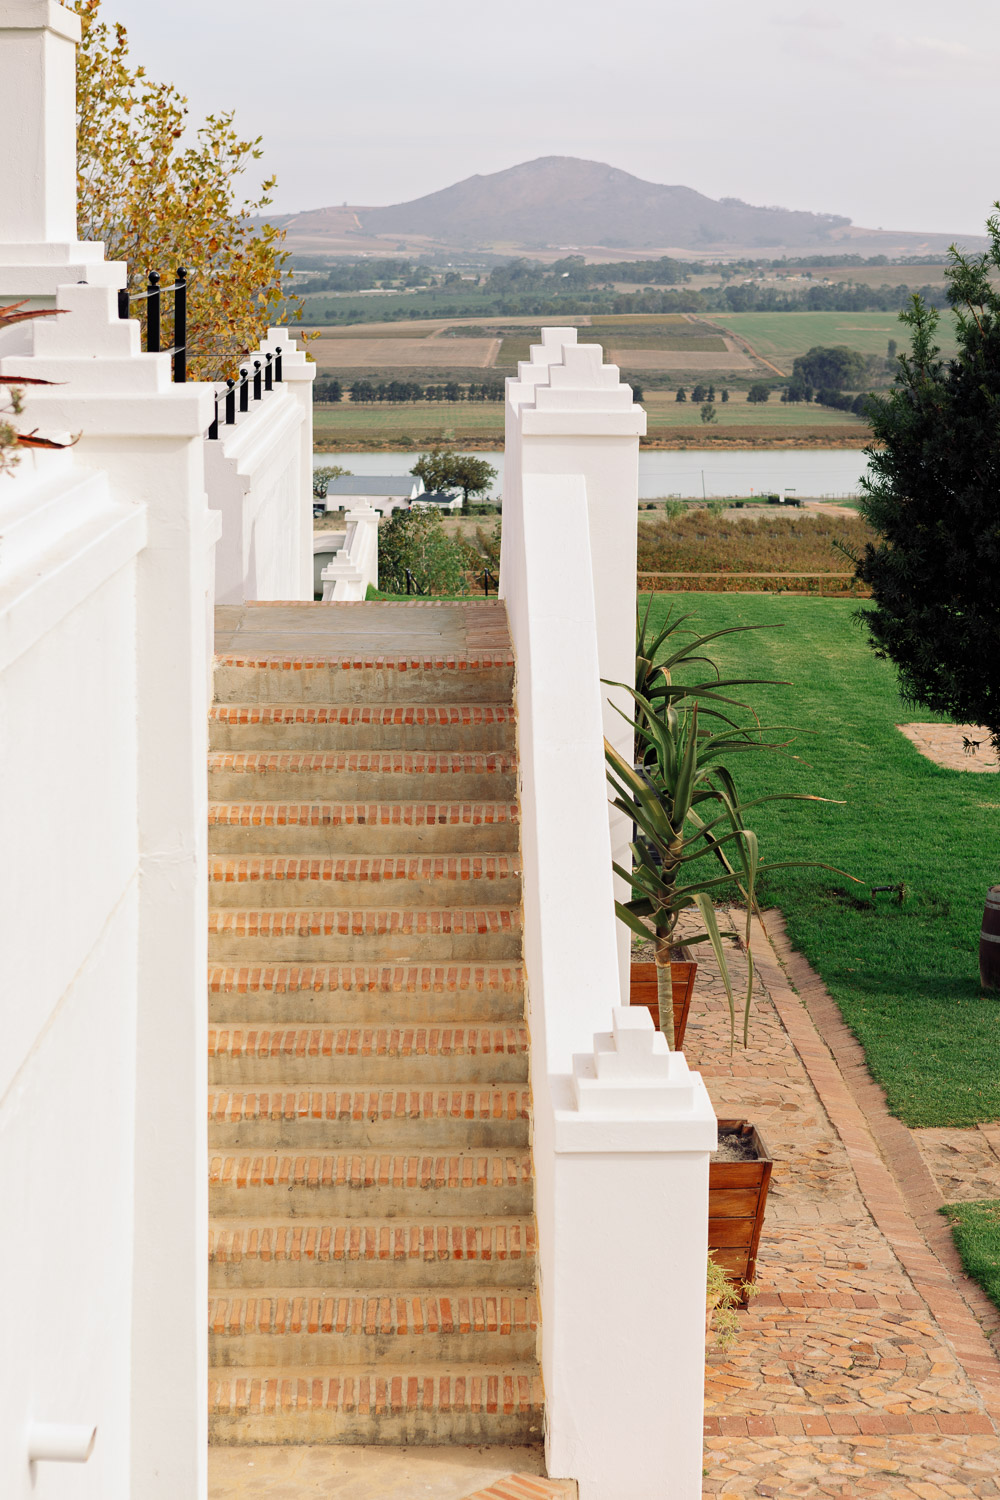 south-africa-travel-photography-1-38.jpg